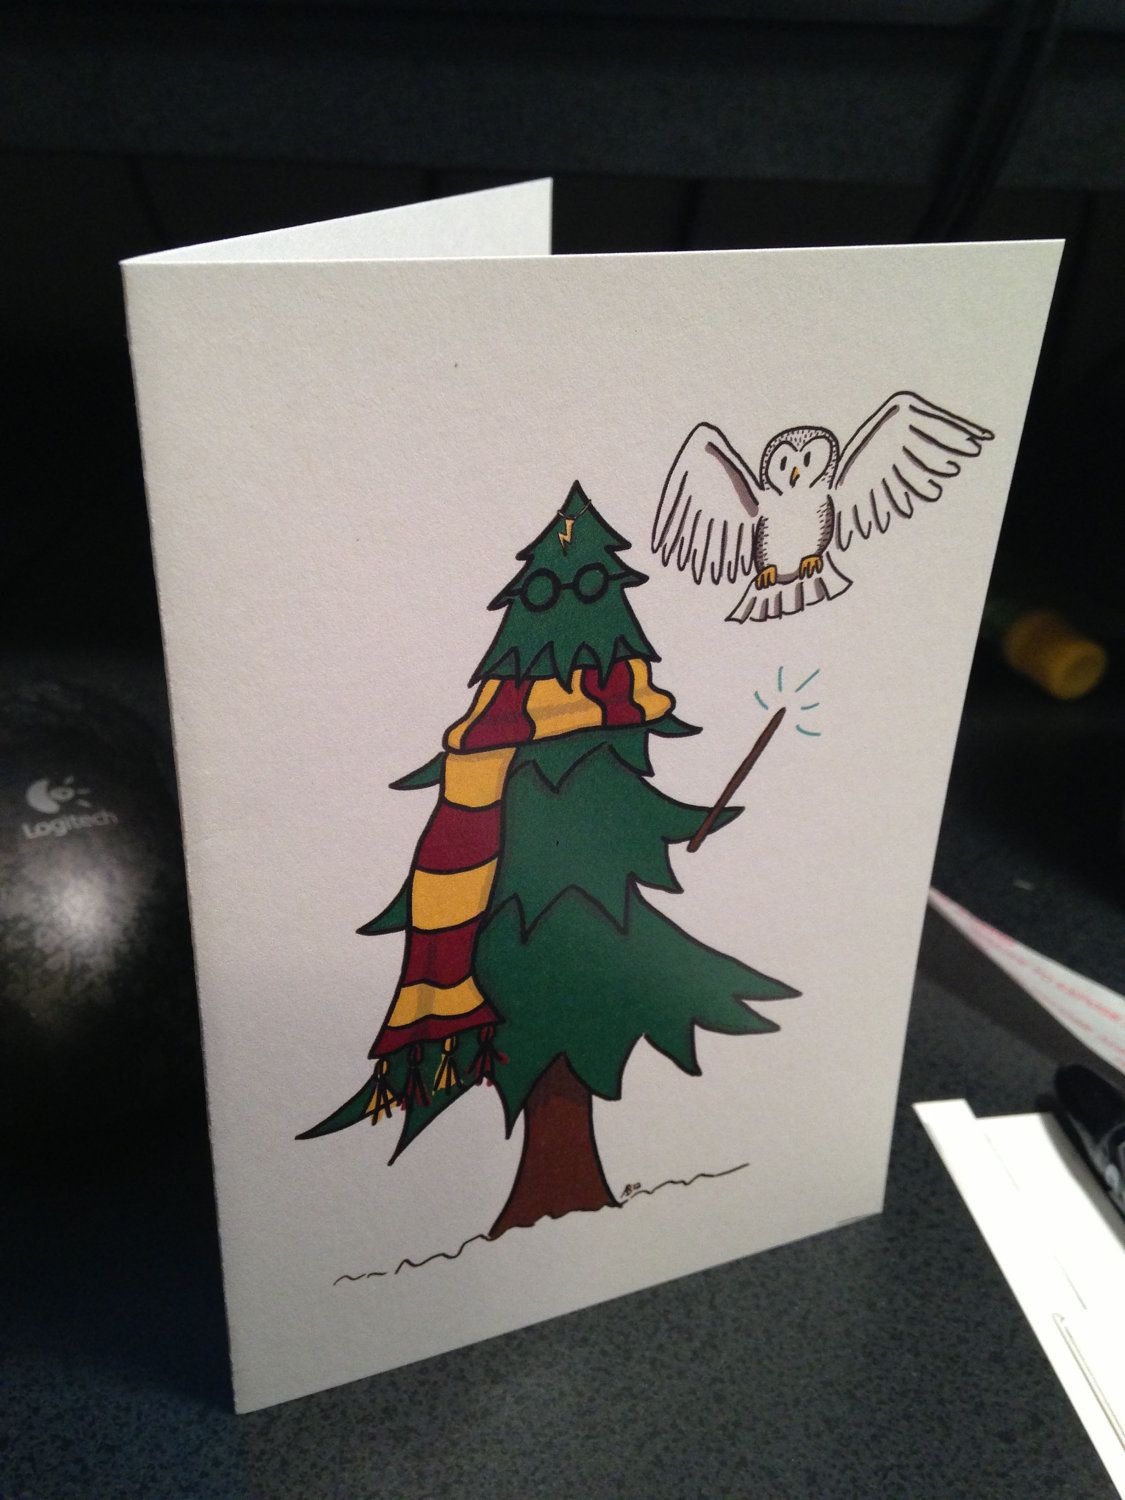 Harry Potter Cosplay Tree Handdesigned Christmas By Cardcrafteria $2.50 | Harry Potter ...